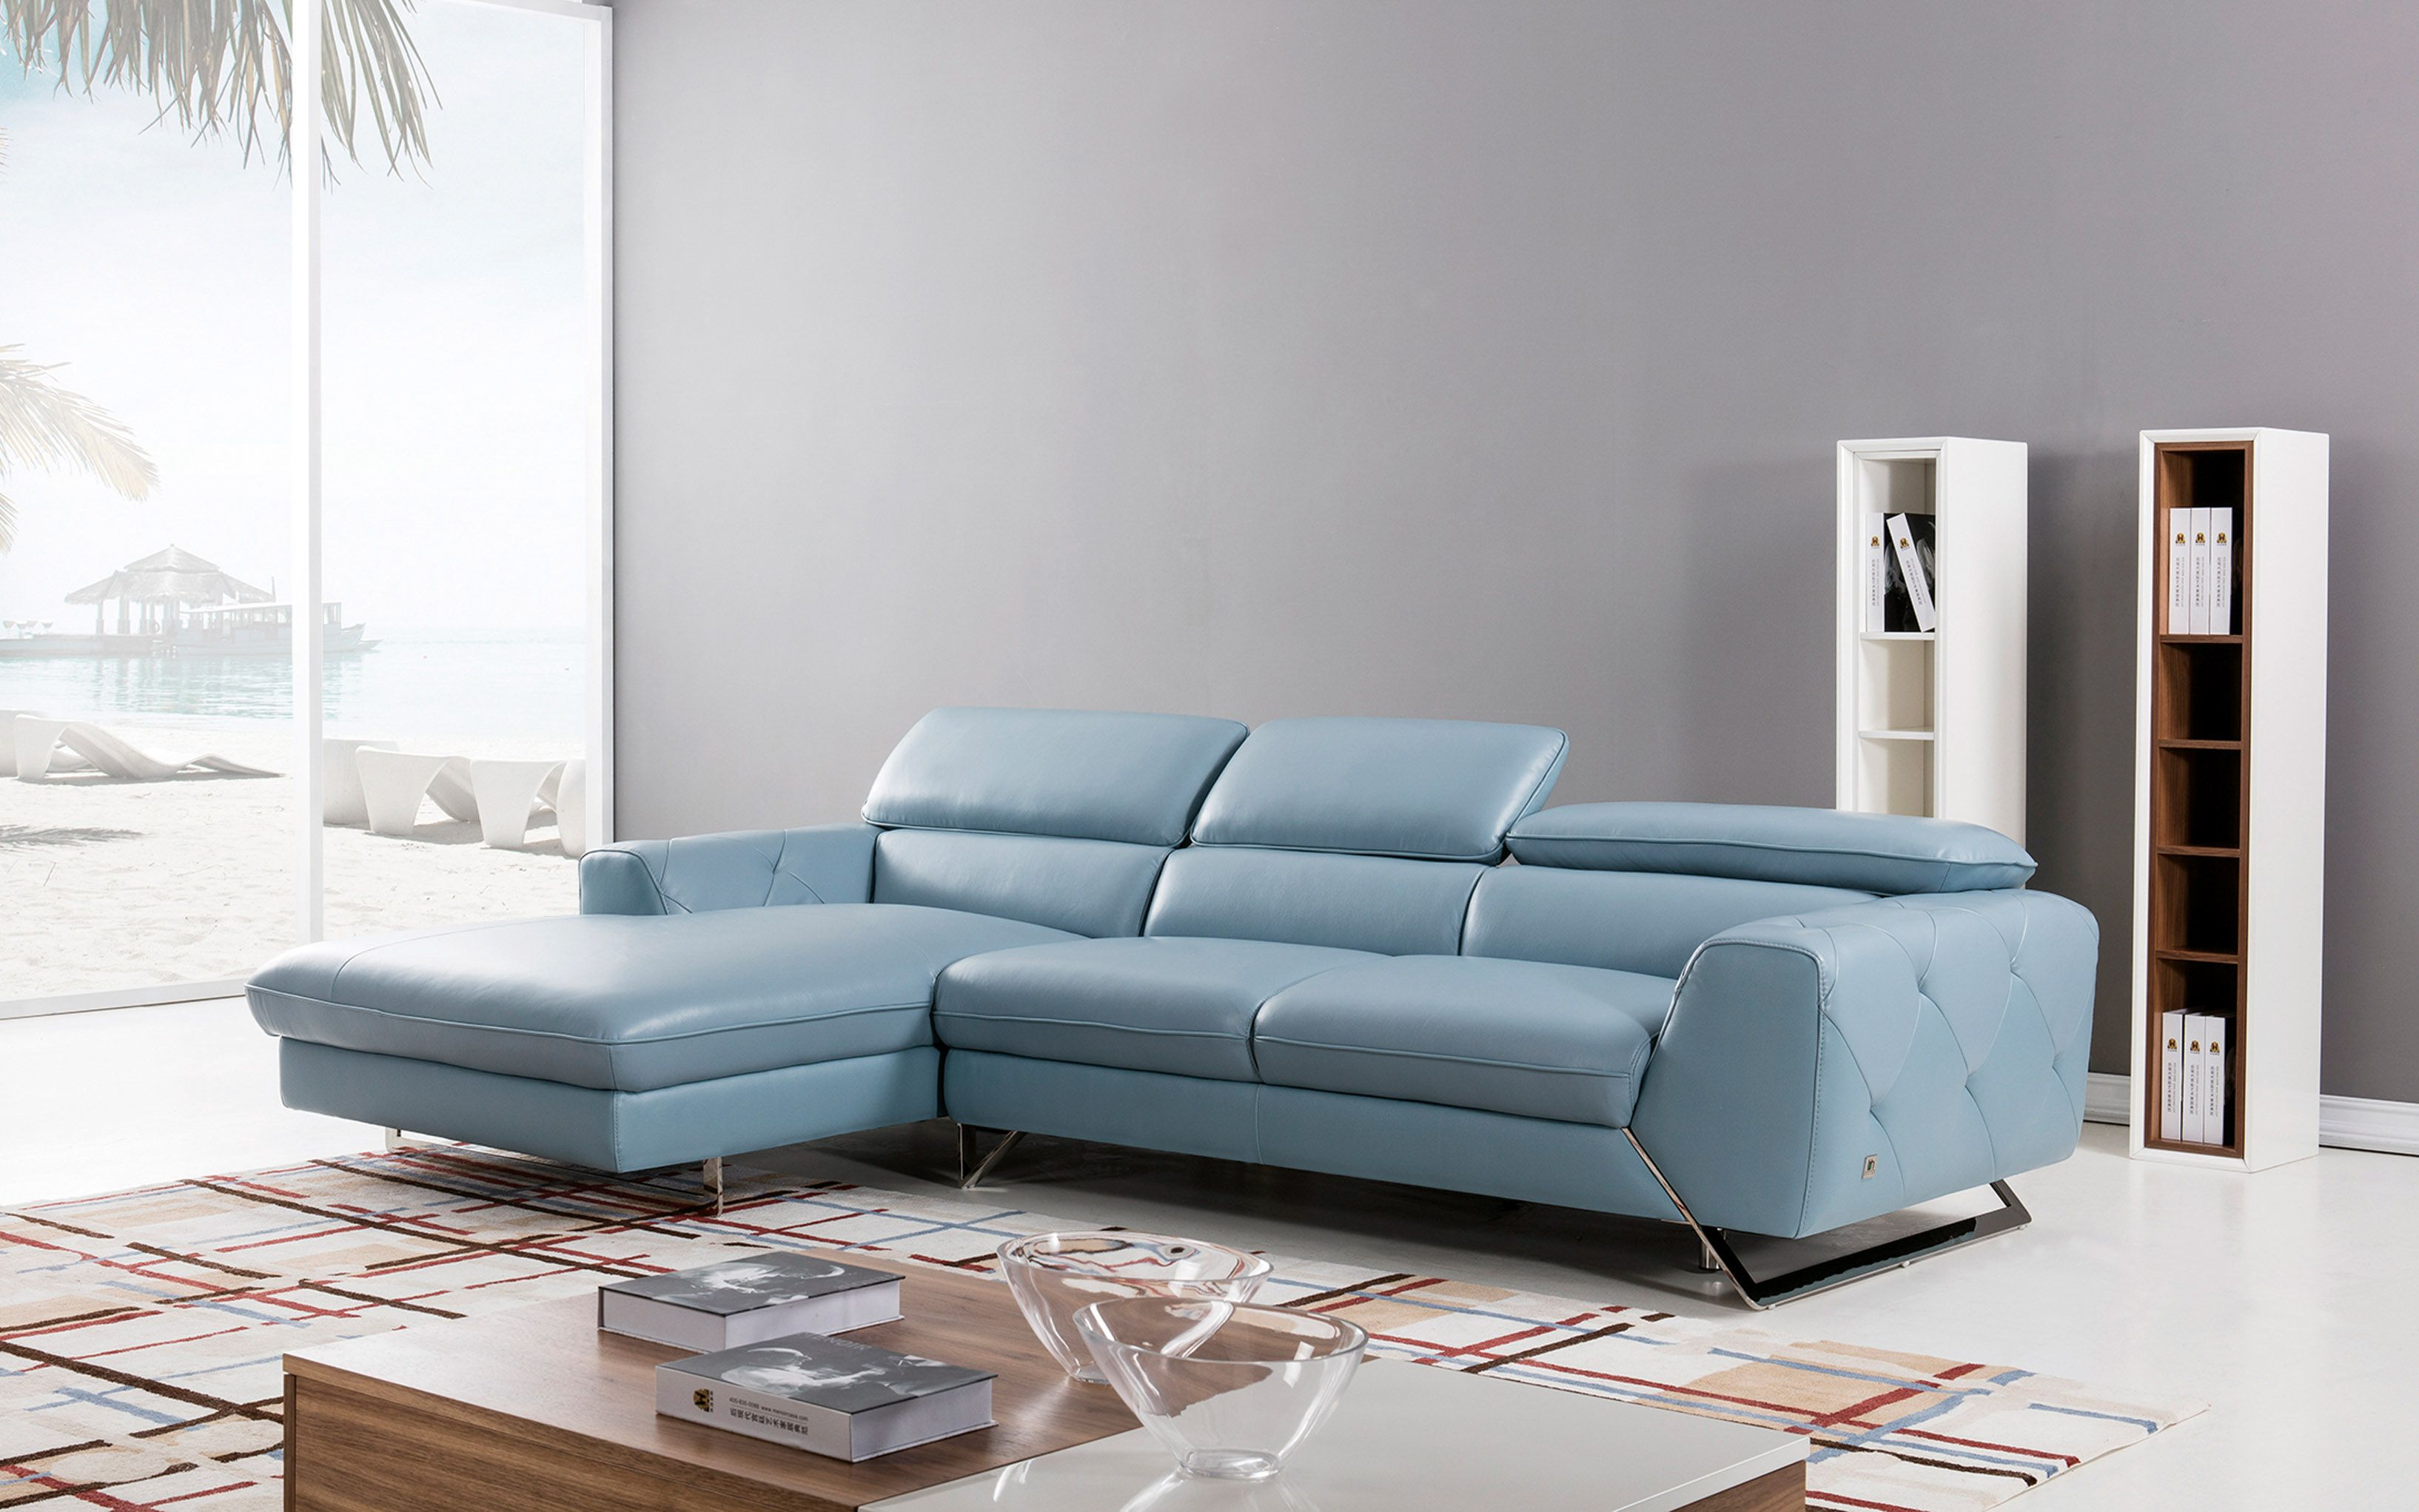 graceful tufted italian top grain leather sectional sofa for the rh pinterest com Teal Leather Sofa Teal Leather Sofa